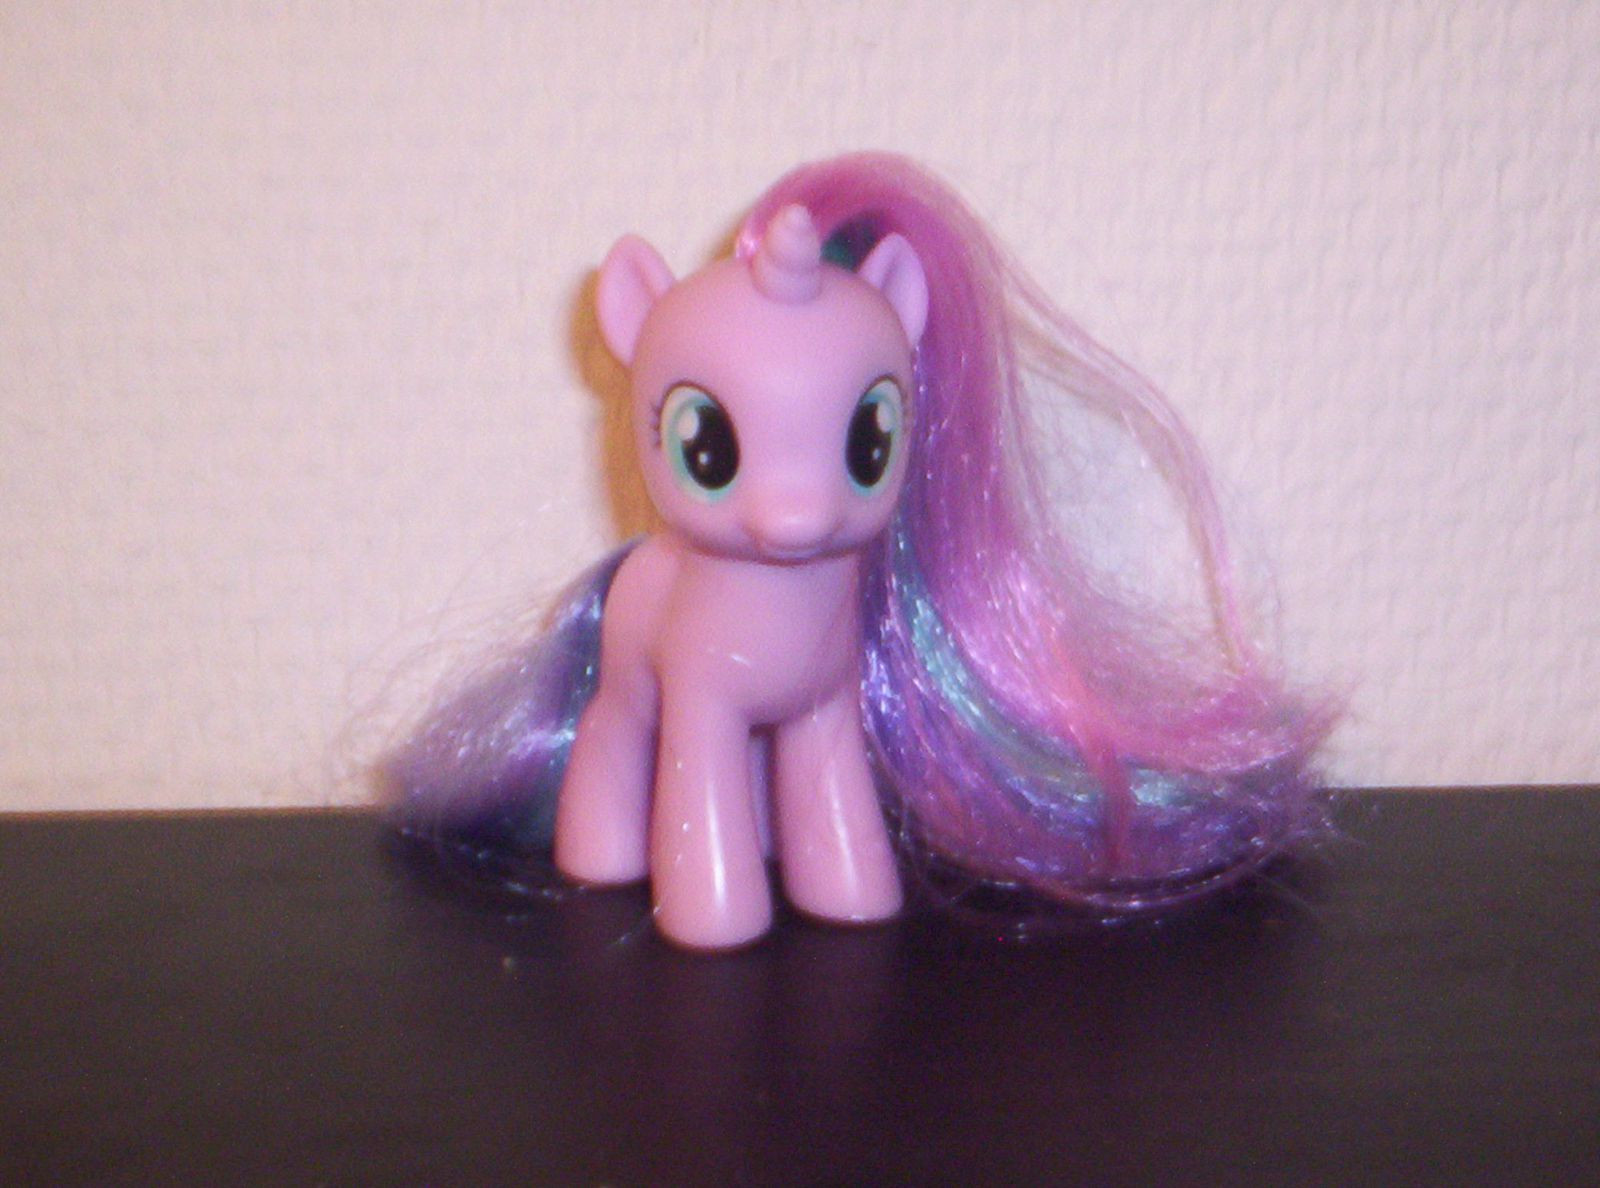 Bébé G5, Star Dreams, Hasbro, 2010.